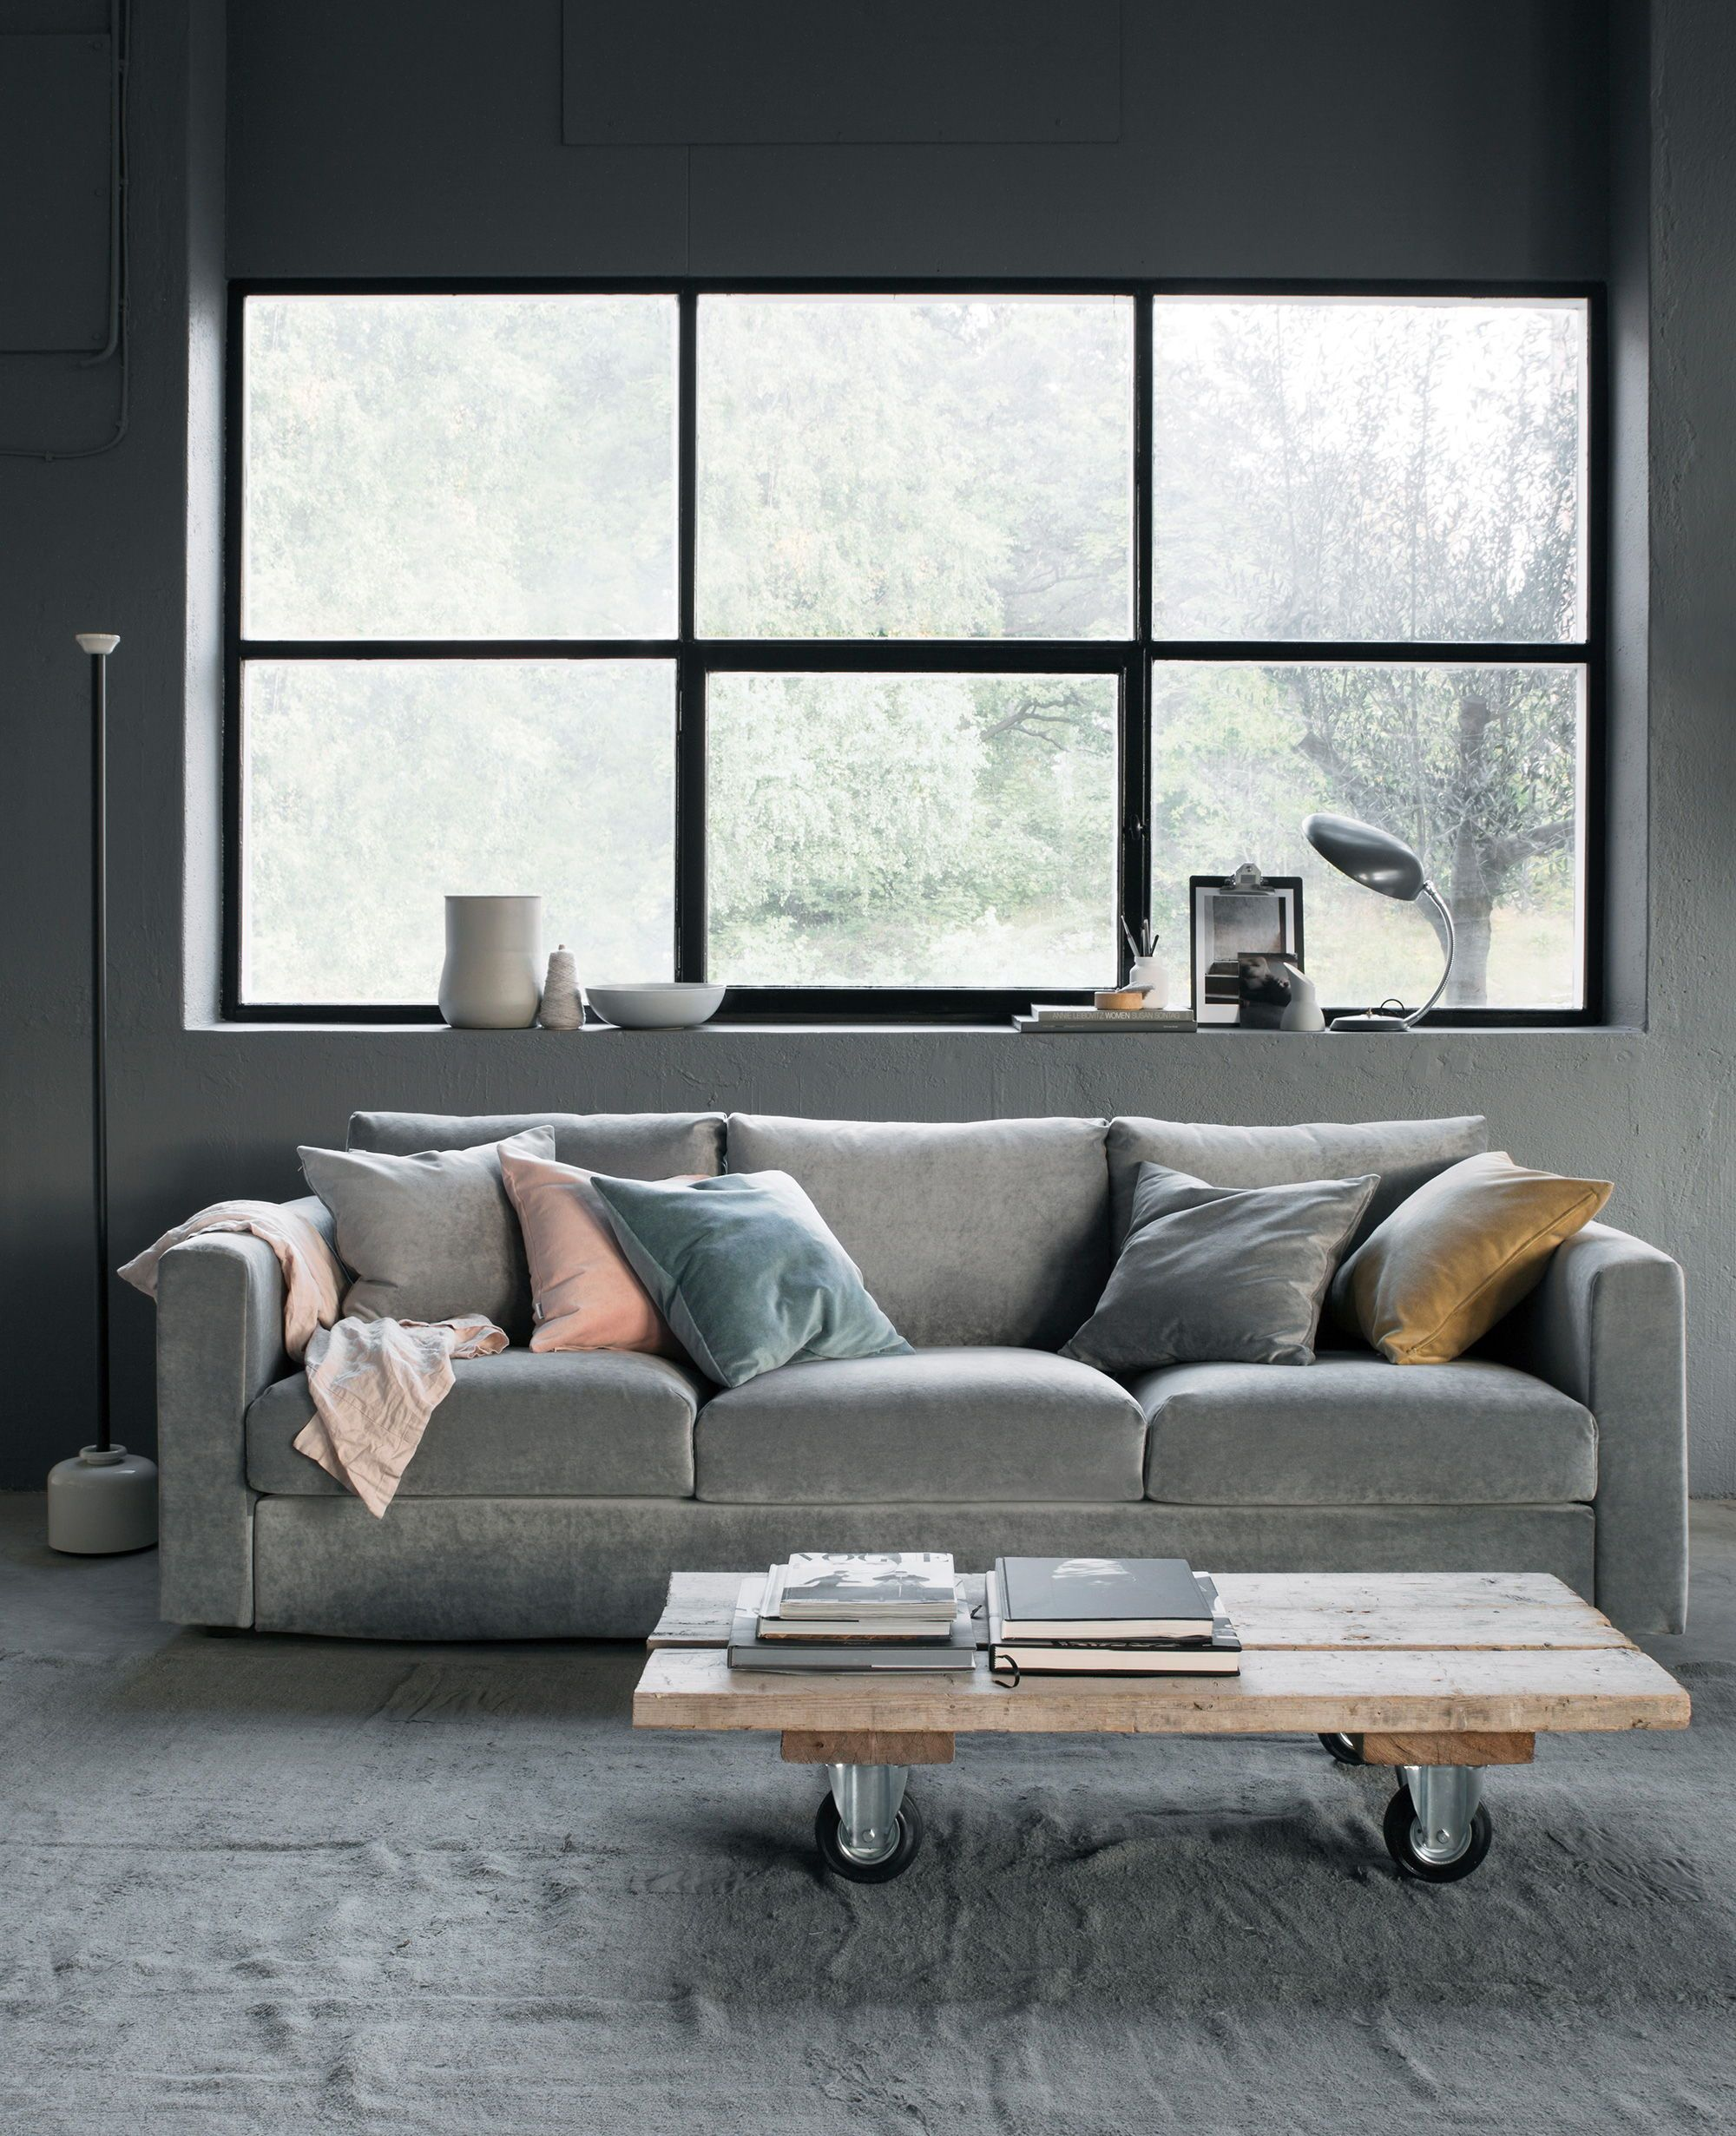 Vimle Sofa With Chaise Gunnared Beige Ikea In 2020 Beige Sectional Living Room Sofa Bed With Chaise Ikea Vimle Sofa